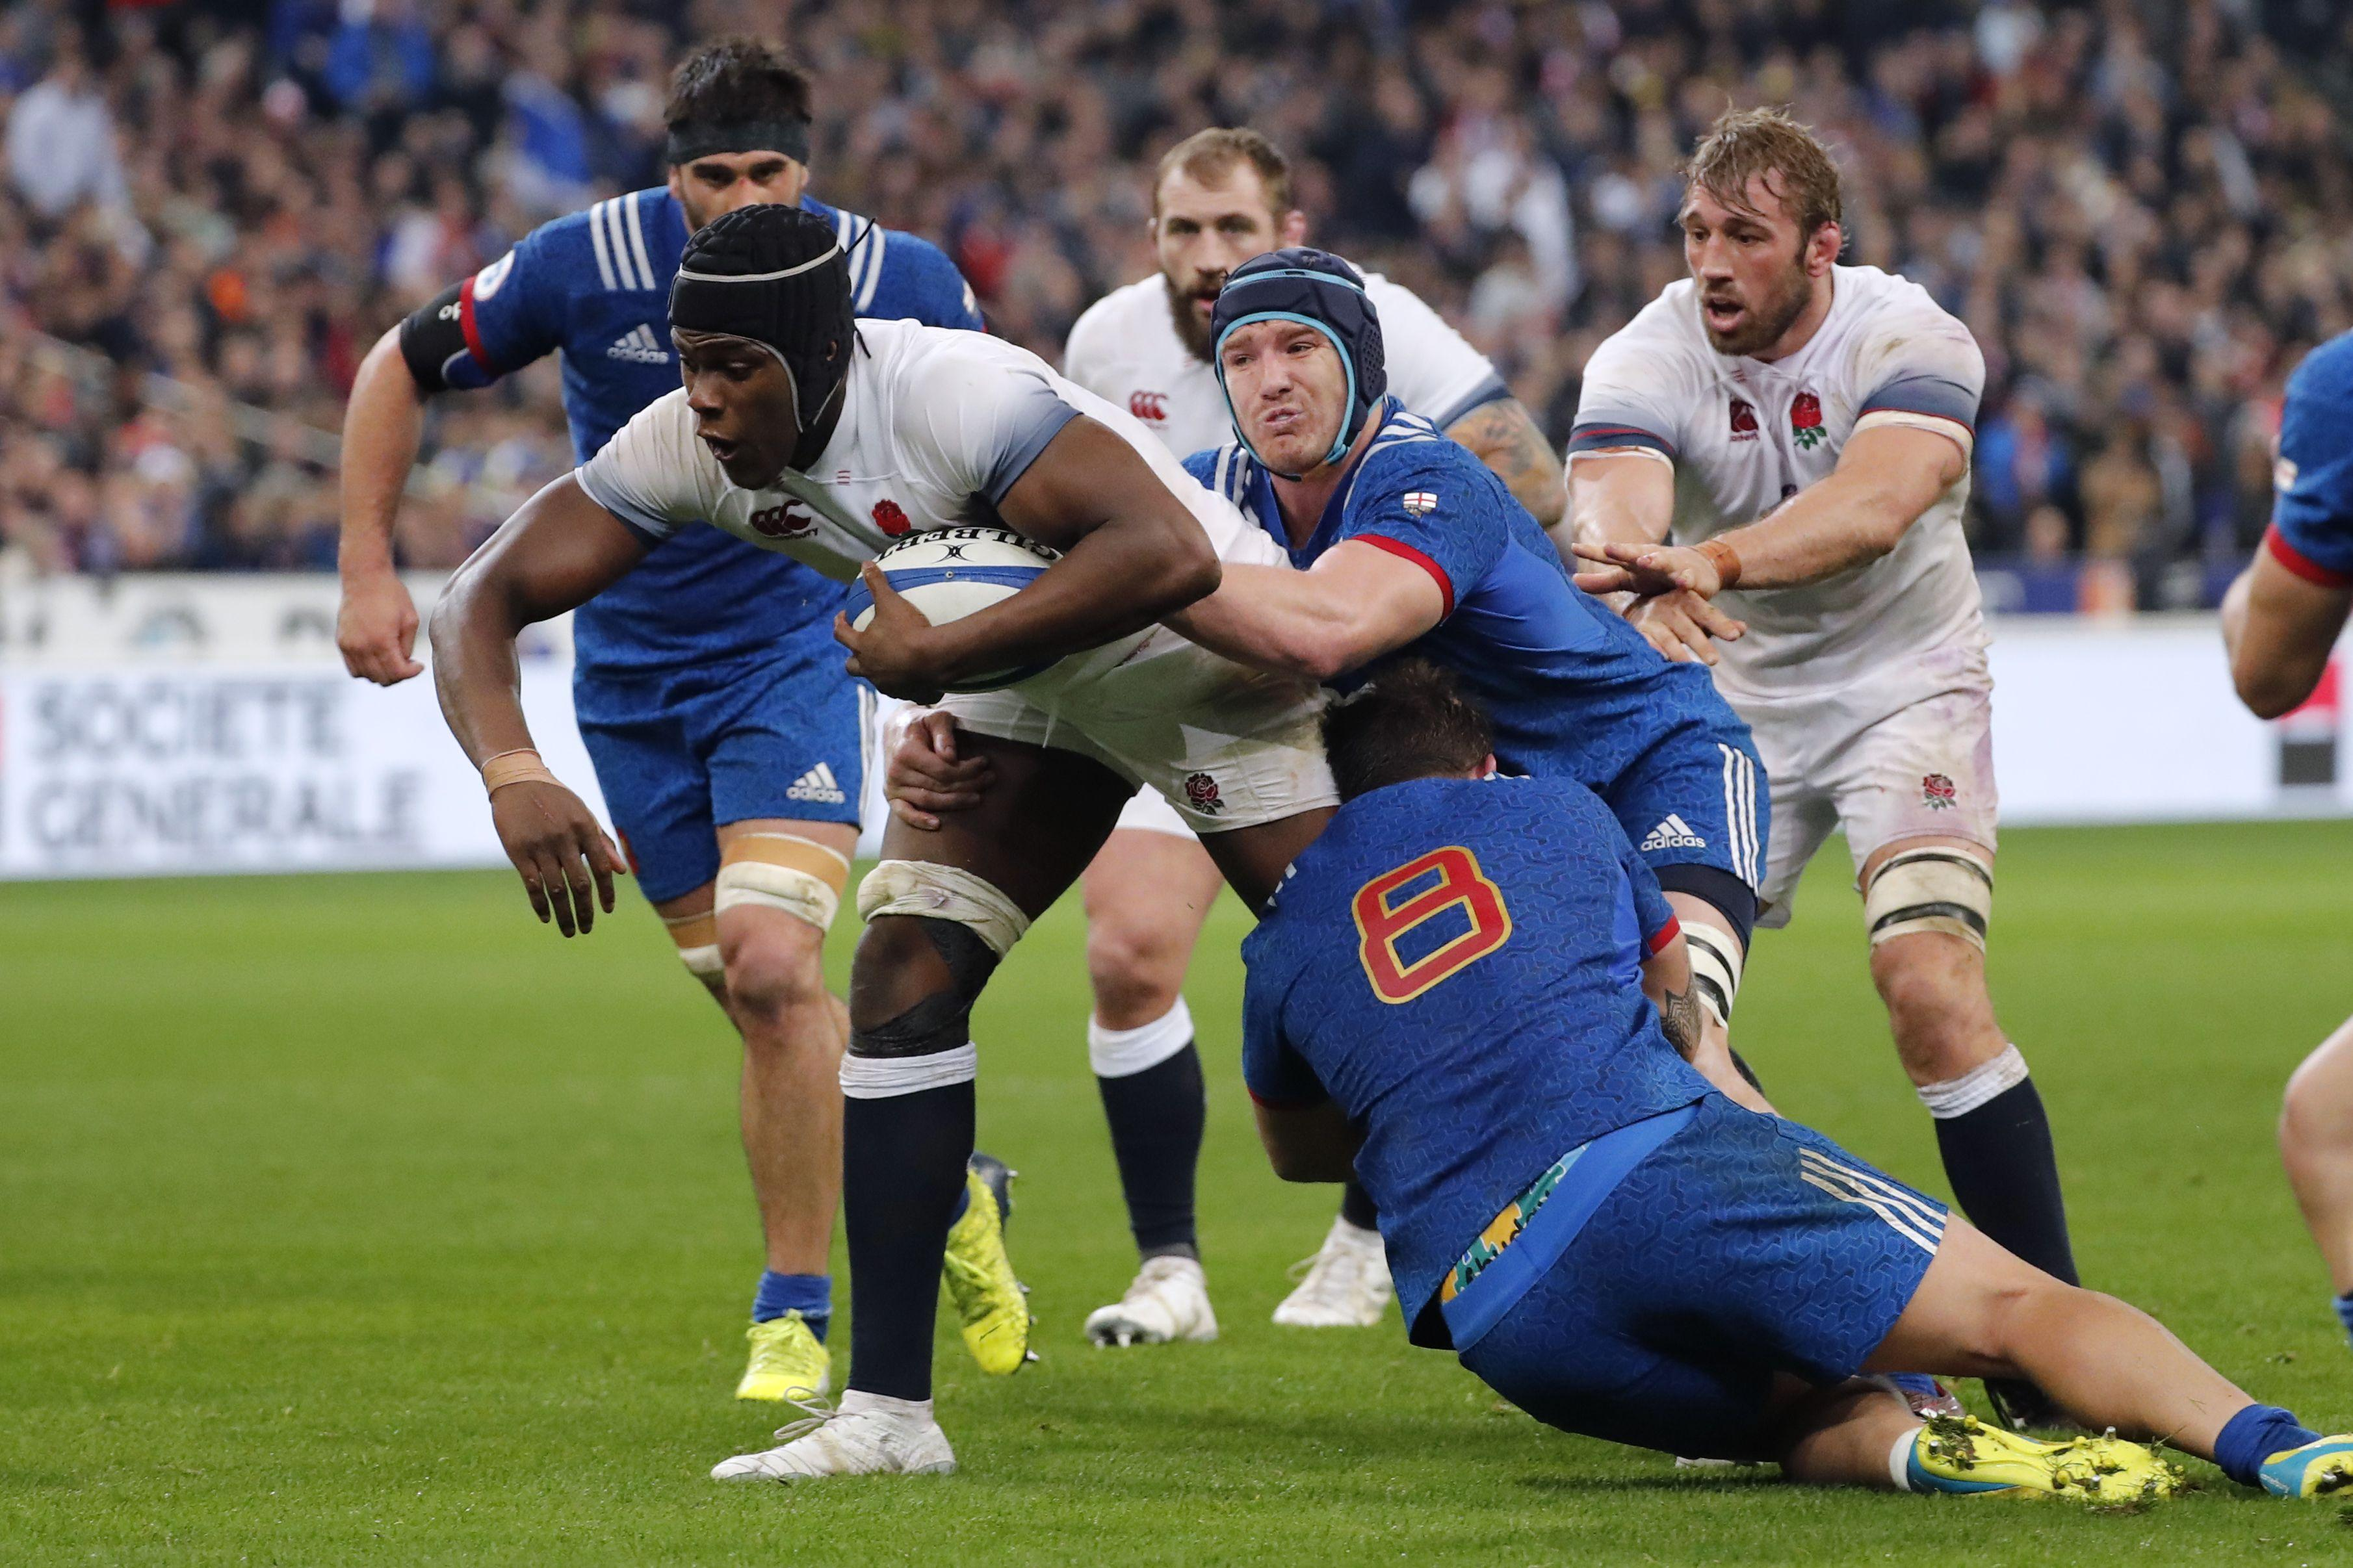 Maro Itoje had been making progress in a maul in the 49th minute when the alleged bite took place